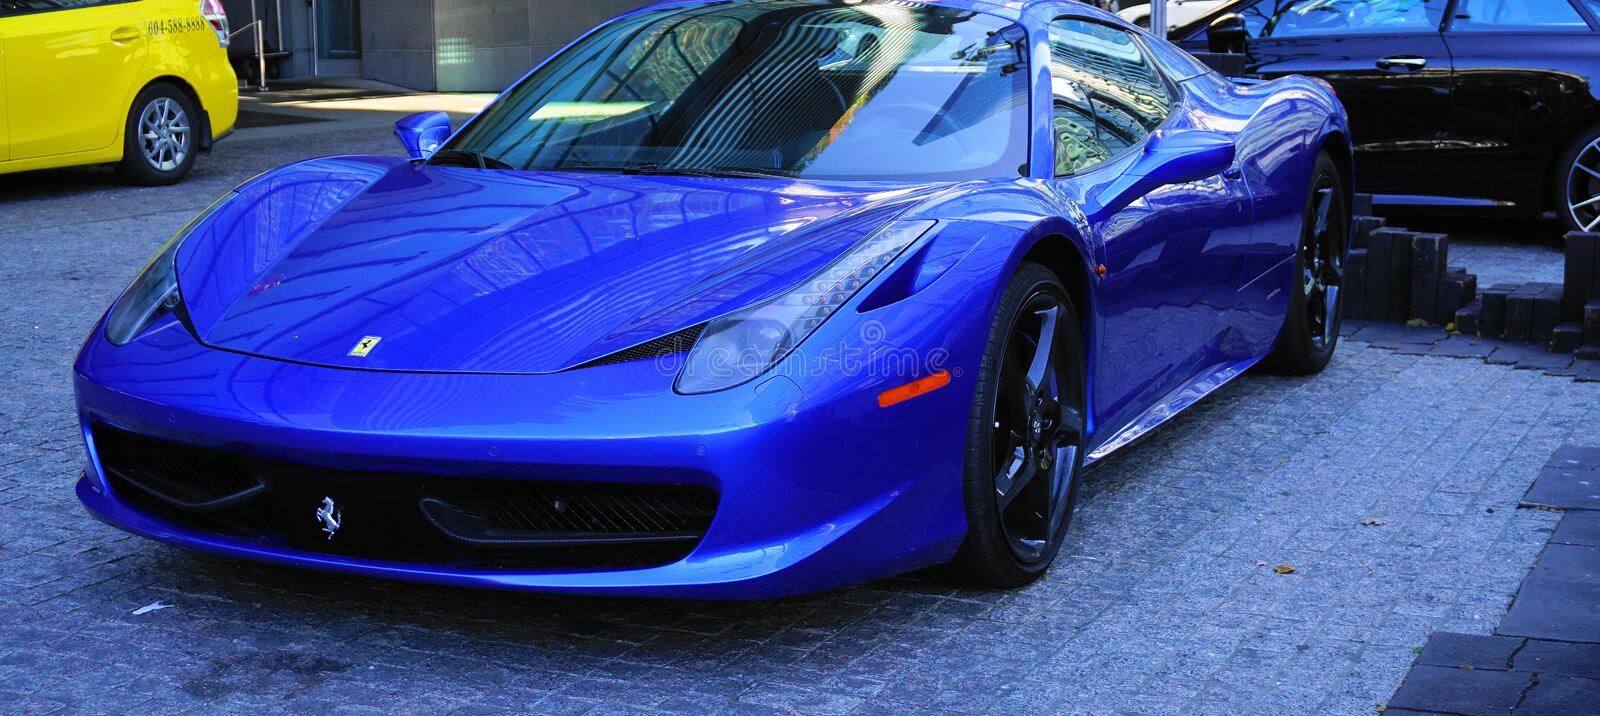 Luxury Ferrari blue car parked at the entrance of the Fairmont Pacific Rim hotel in Downtown Vancouver. royalty free stock image